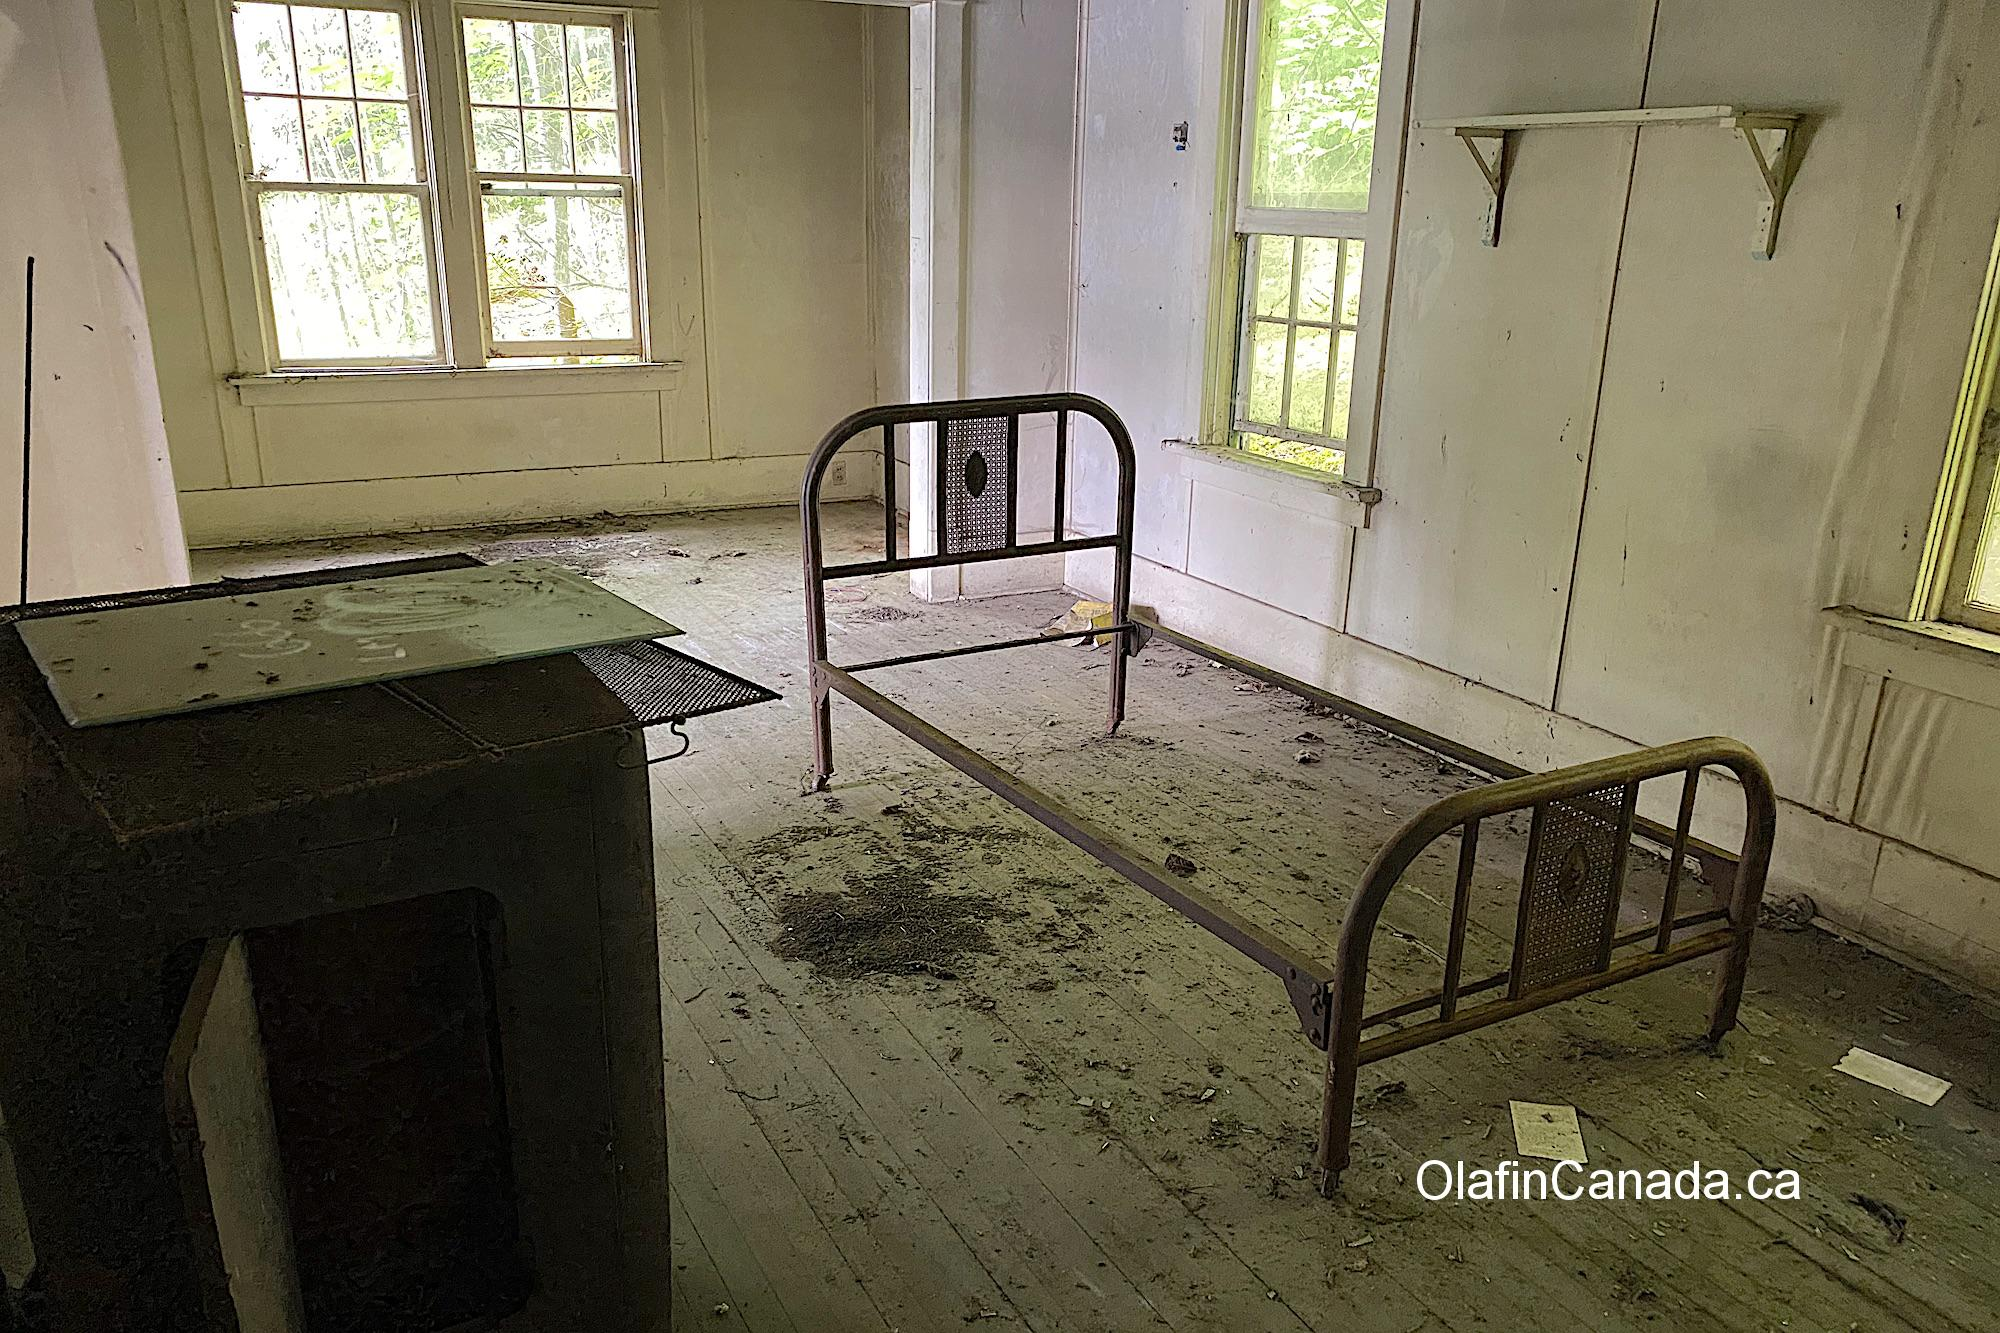 Bed frame in the abandoned mansion in Alice Arm #olafincanada #britishcolumbia #discoverbc #abandonedbc #alicearm #mansion